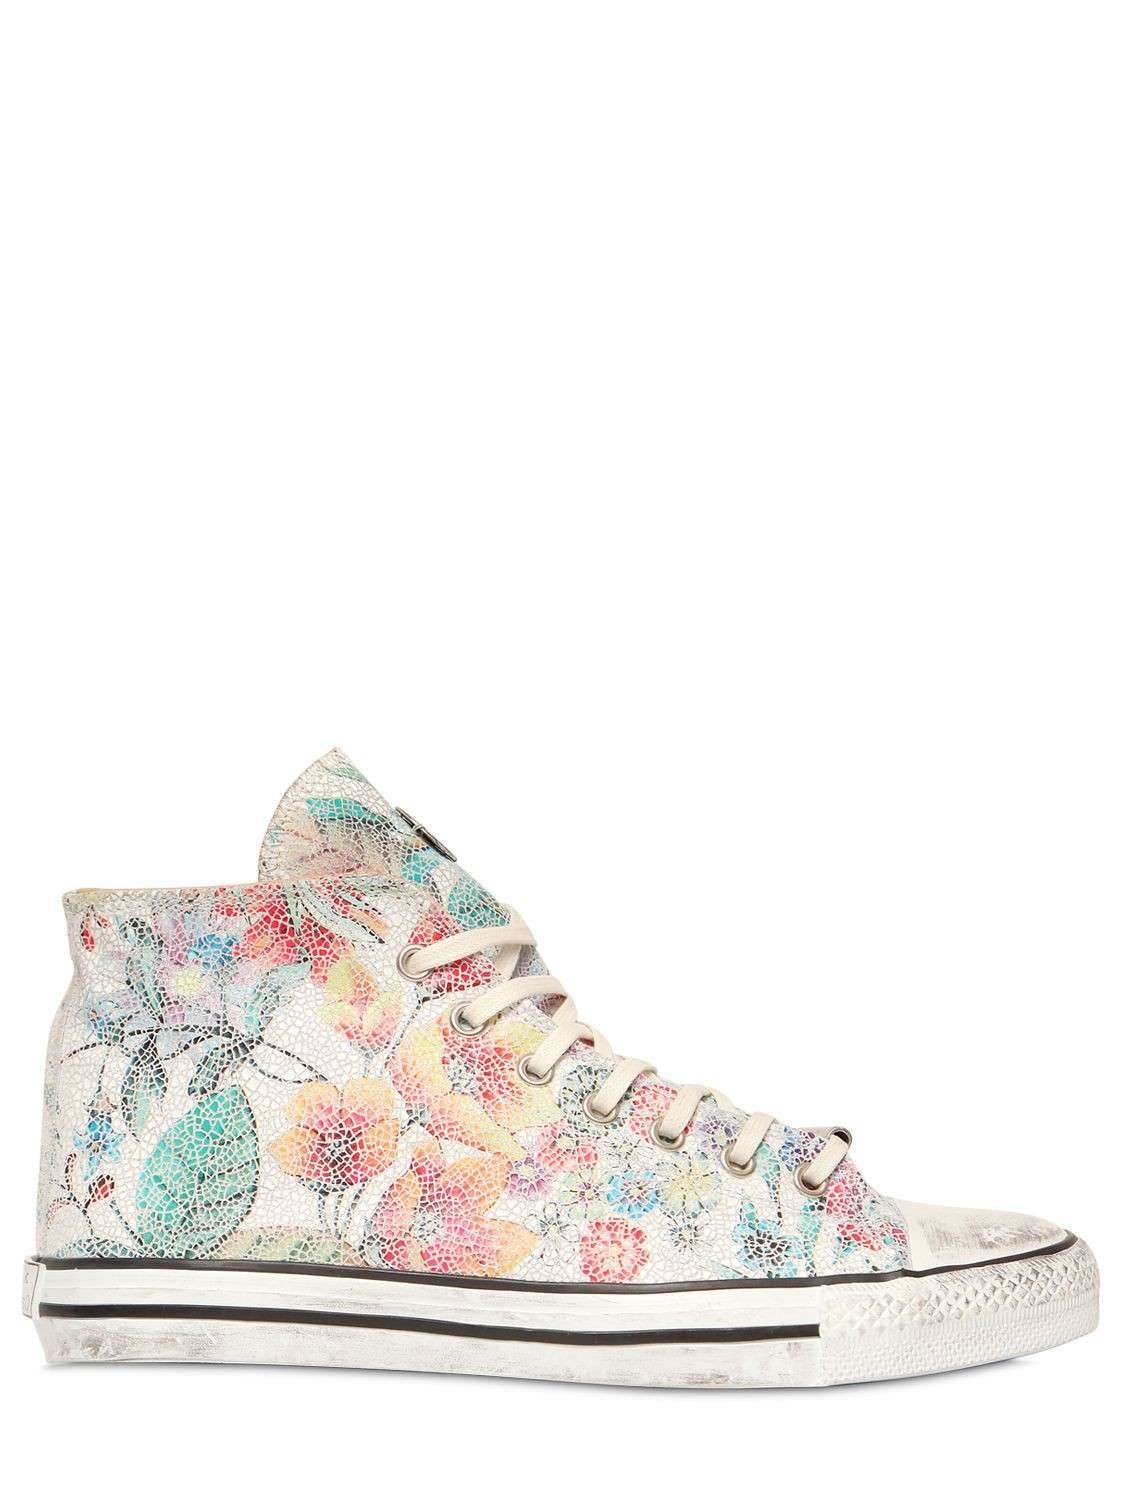 Sneakers in pelle stampa floreale Black Dioniso